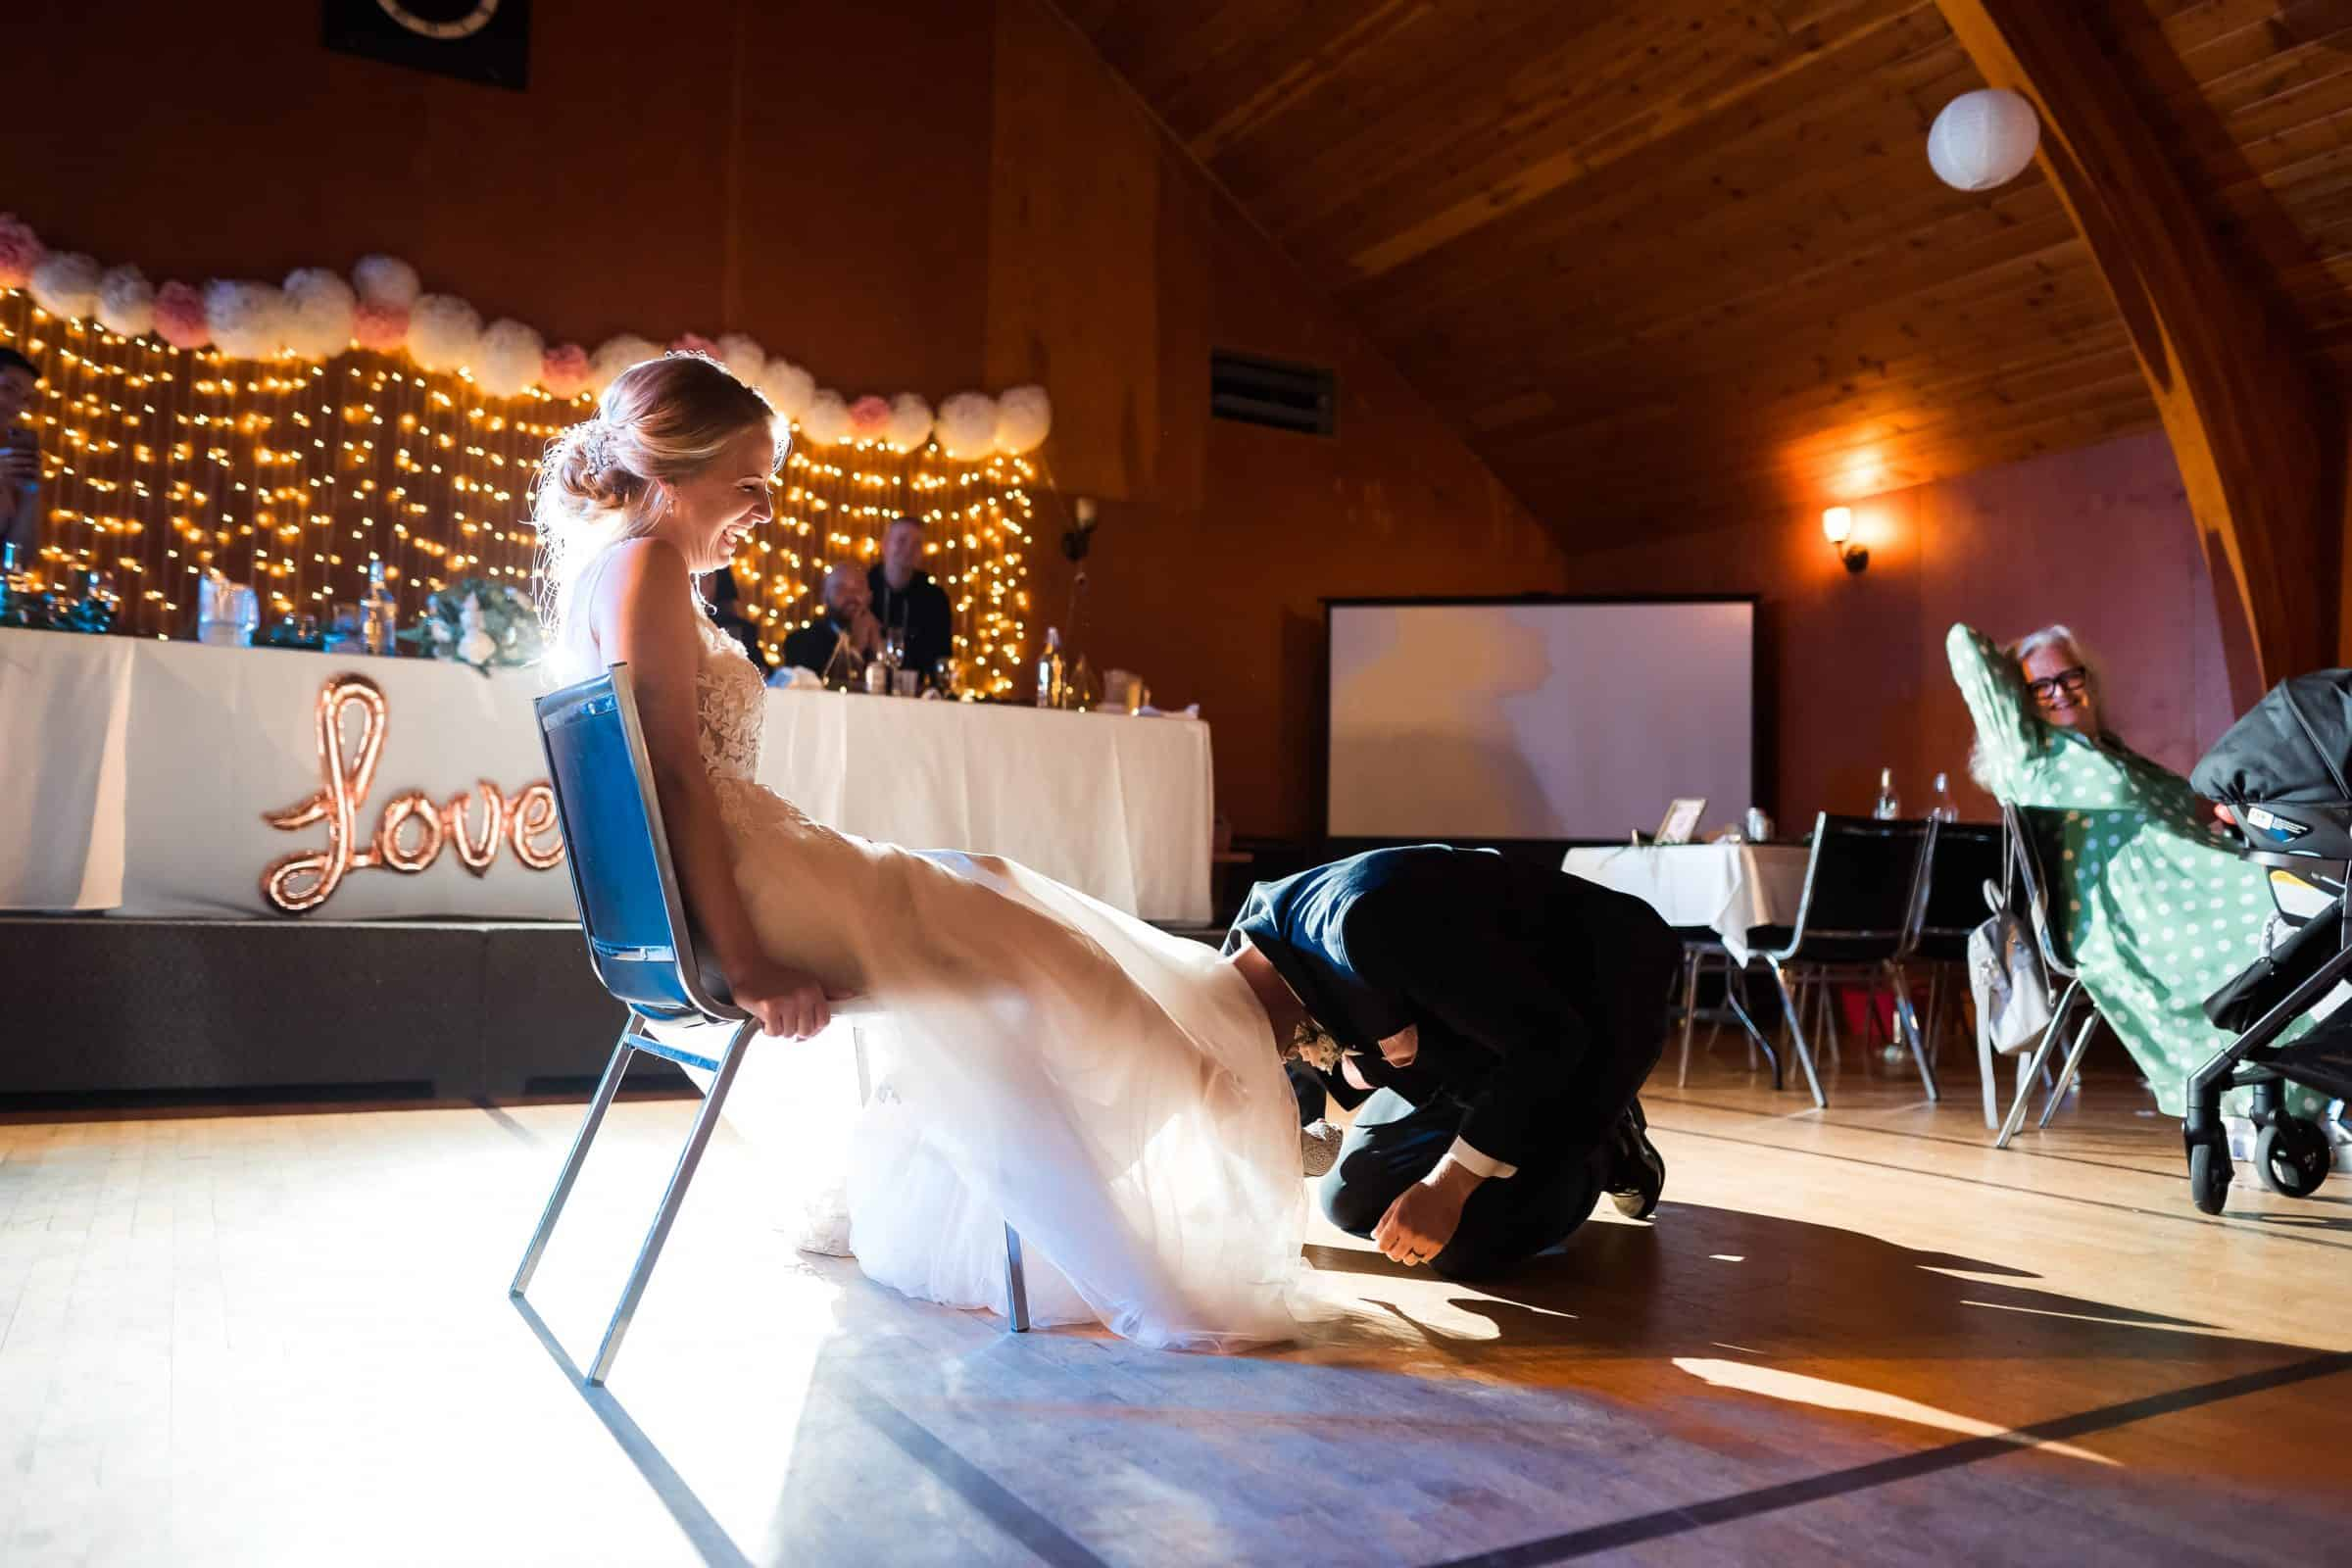 groom going under dress to take off garter while bride laughs